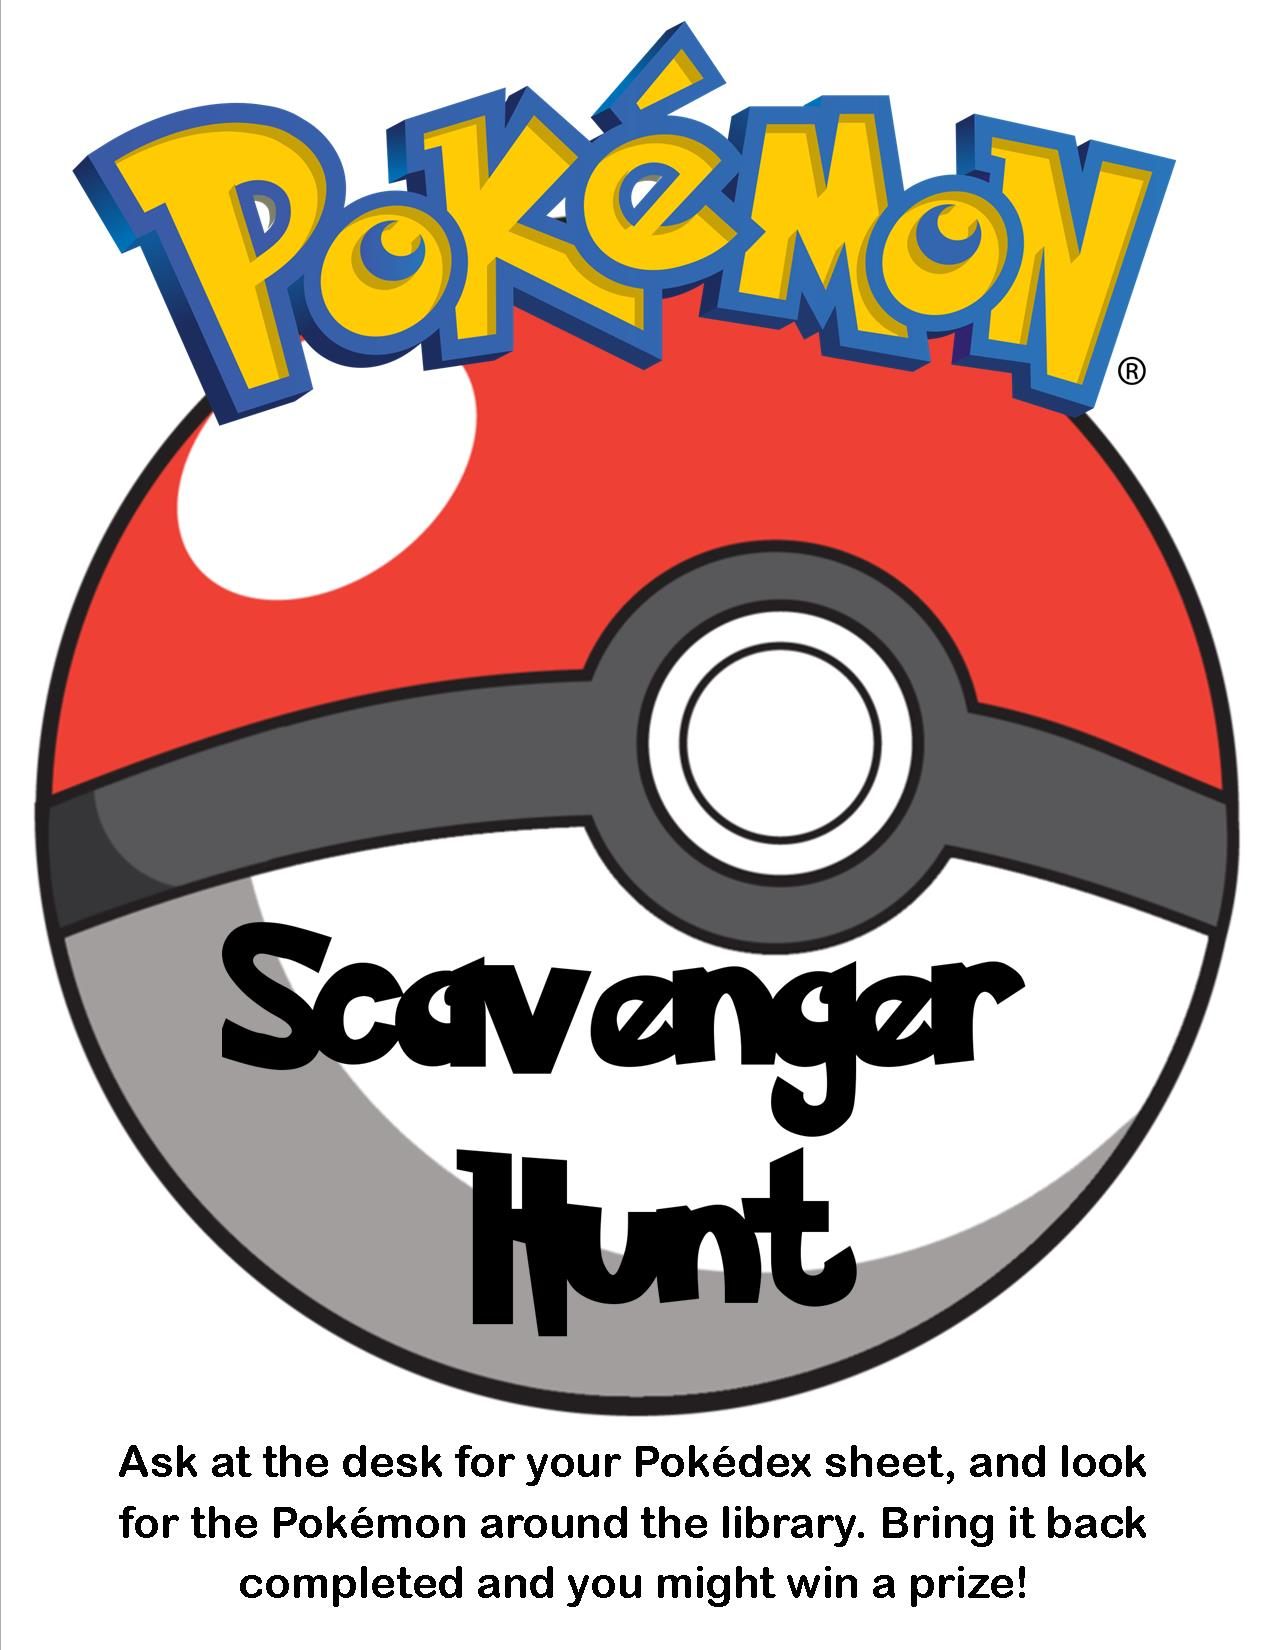 Pokemon Scavenger Hunt Ideas Images